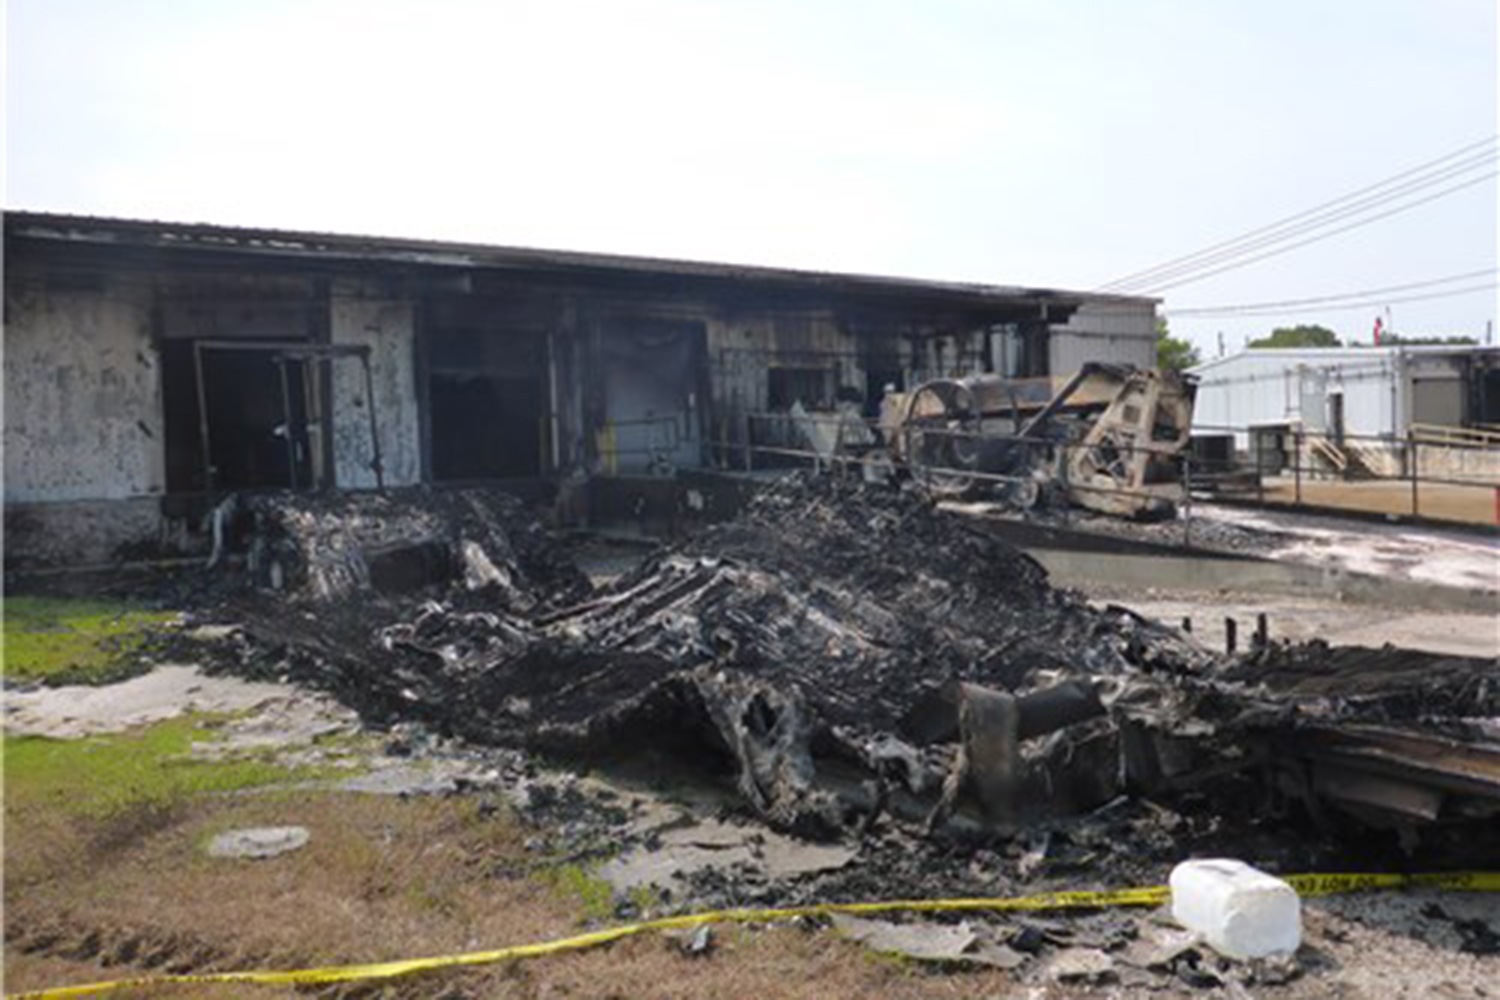 Debris resulting from a series of chemical fires at the Arkema plant in Crosby, Texas.